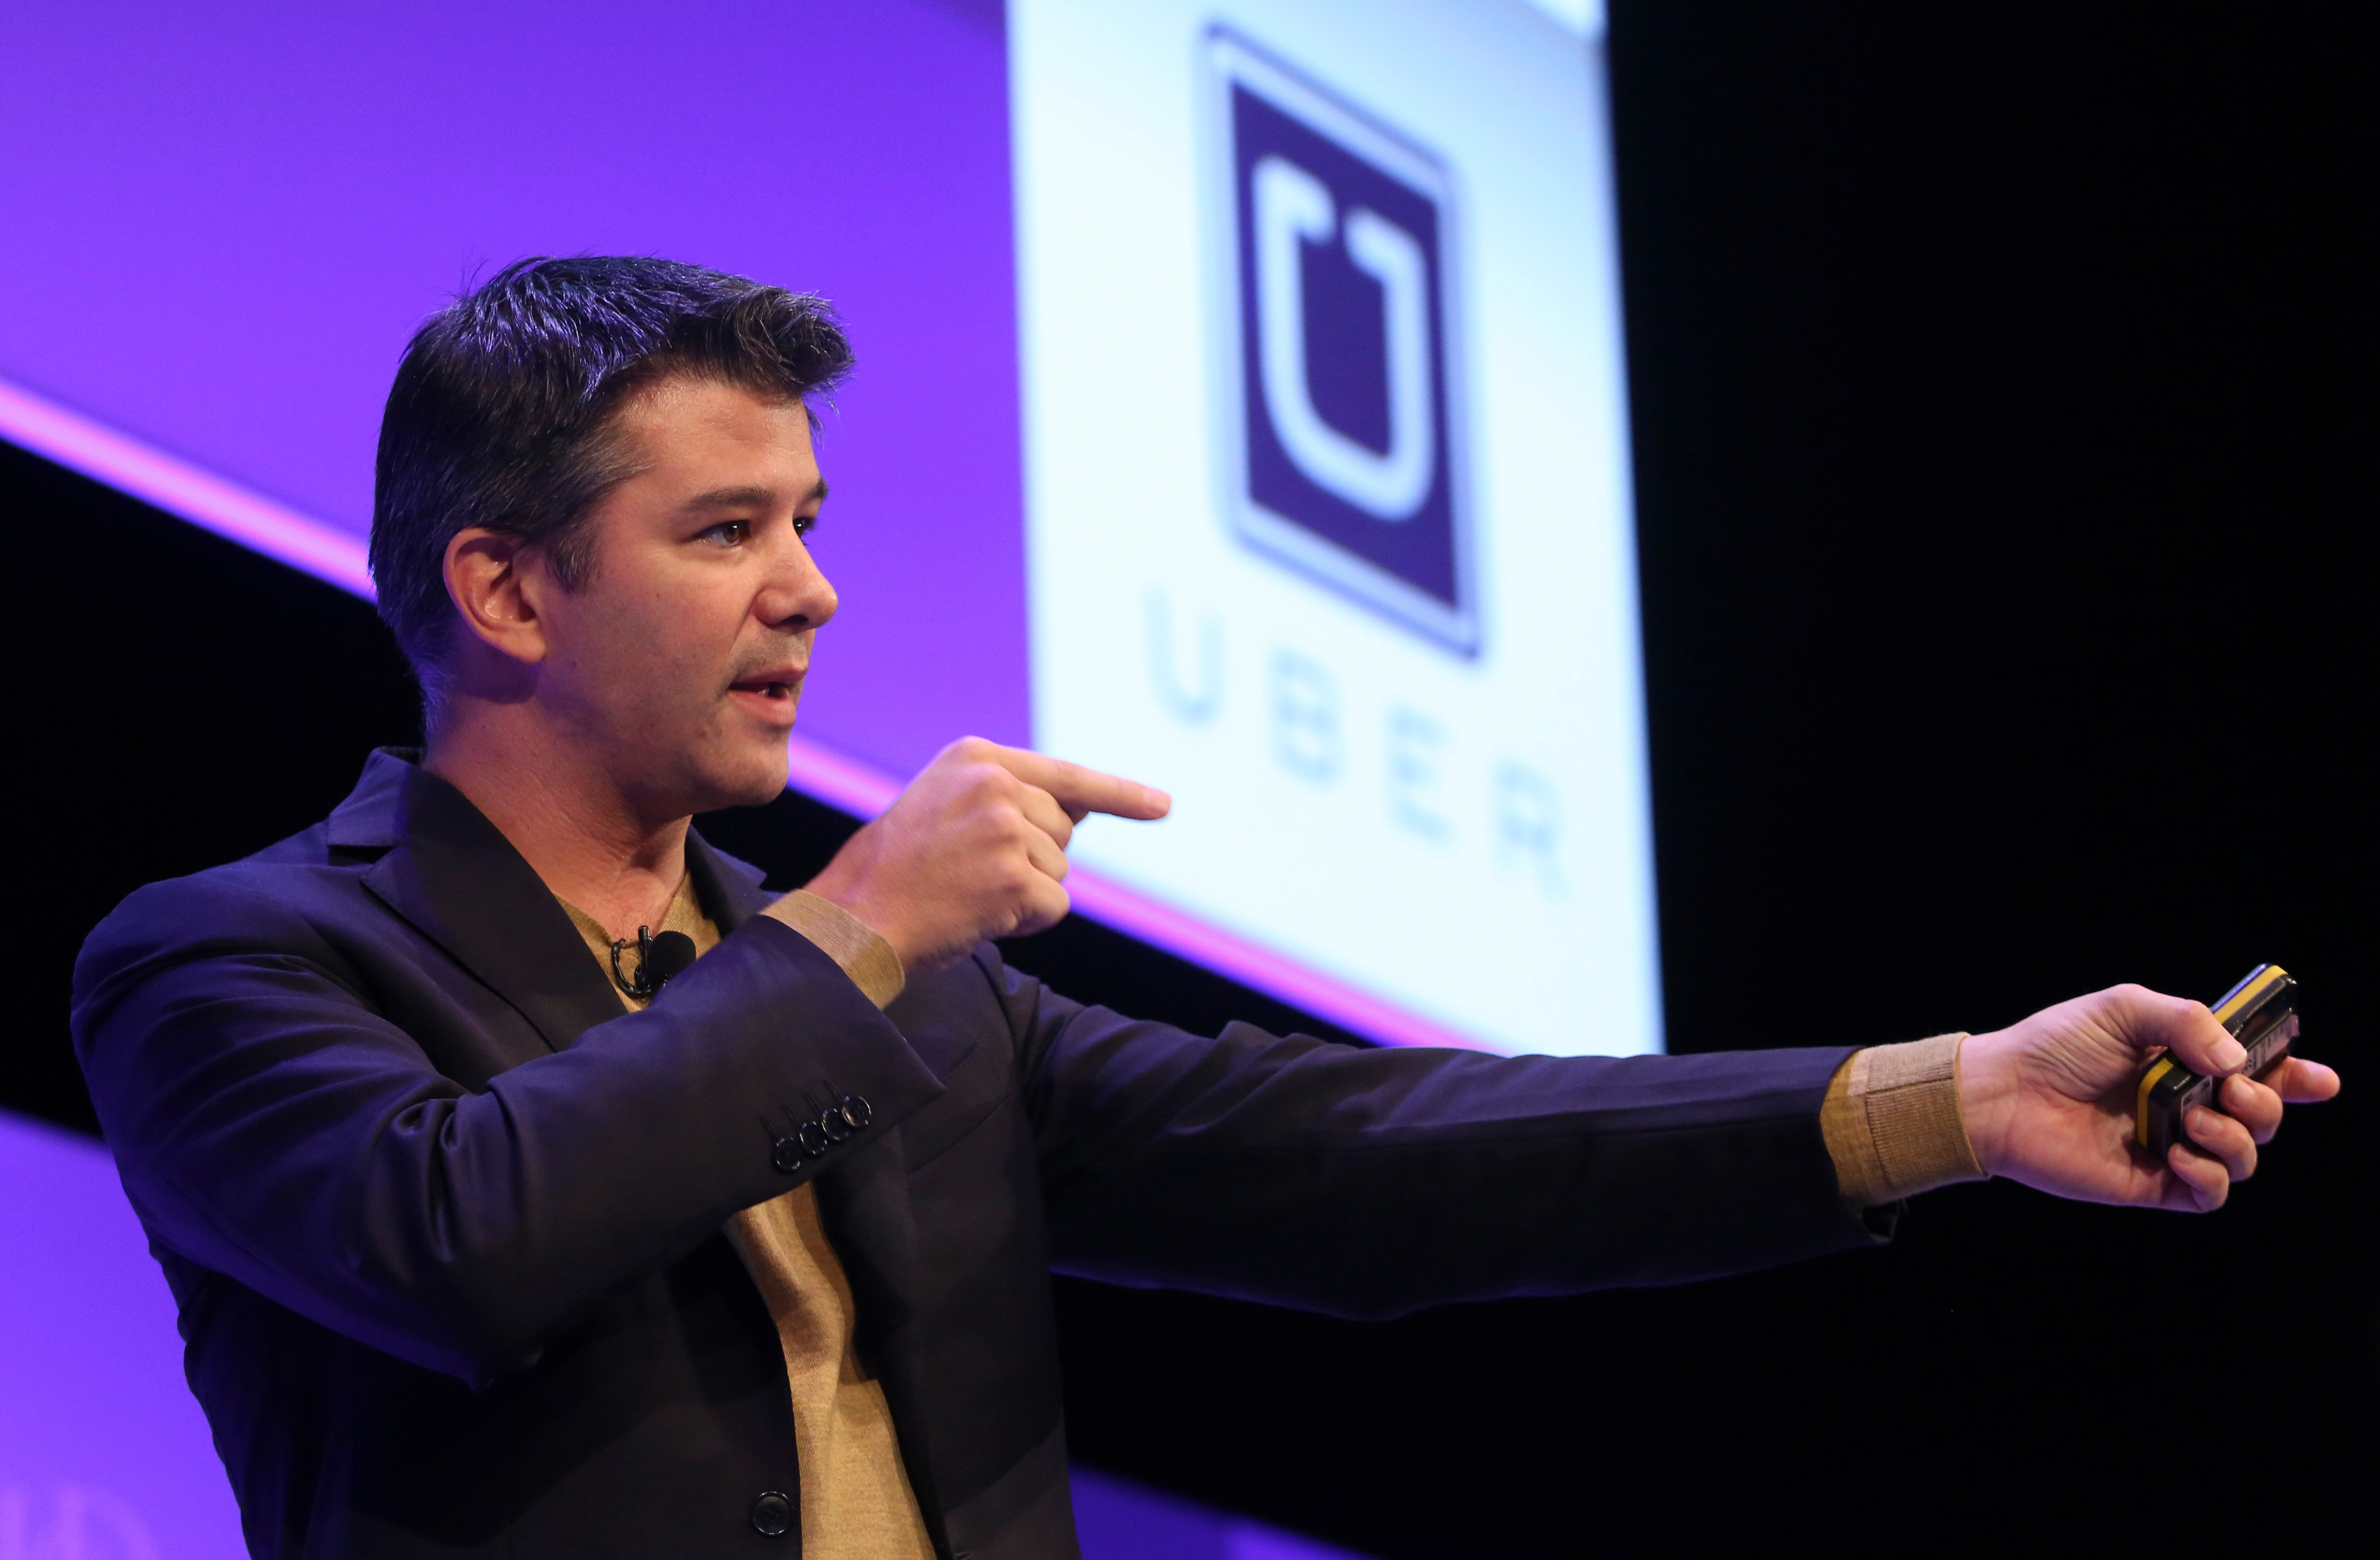 Travis Kalanick, chief executive officer of Uber Technologies Inc., gestures as he speaks during the Institute of Directors (IOD) annual convention at the Royal Albert Hall in London, U.K., on Oct. 3, 2014.